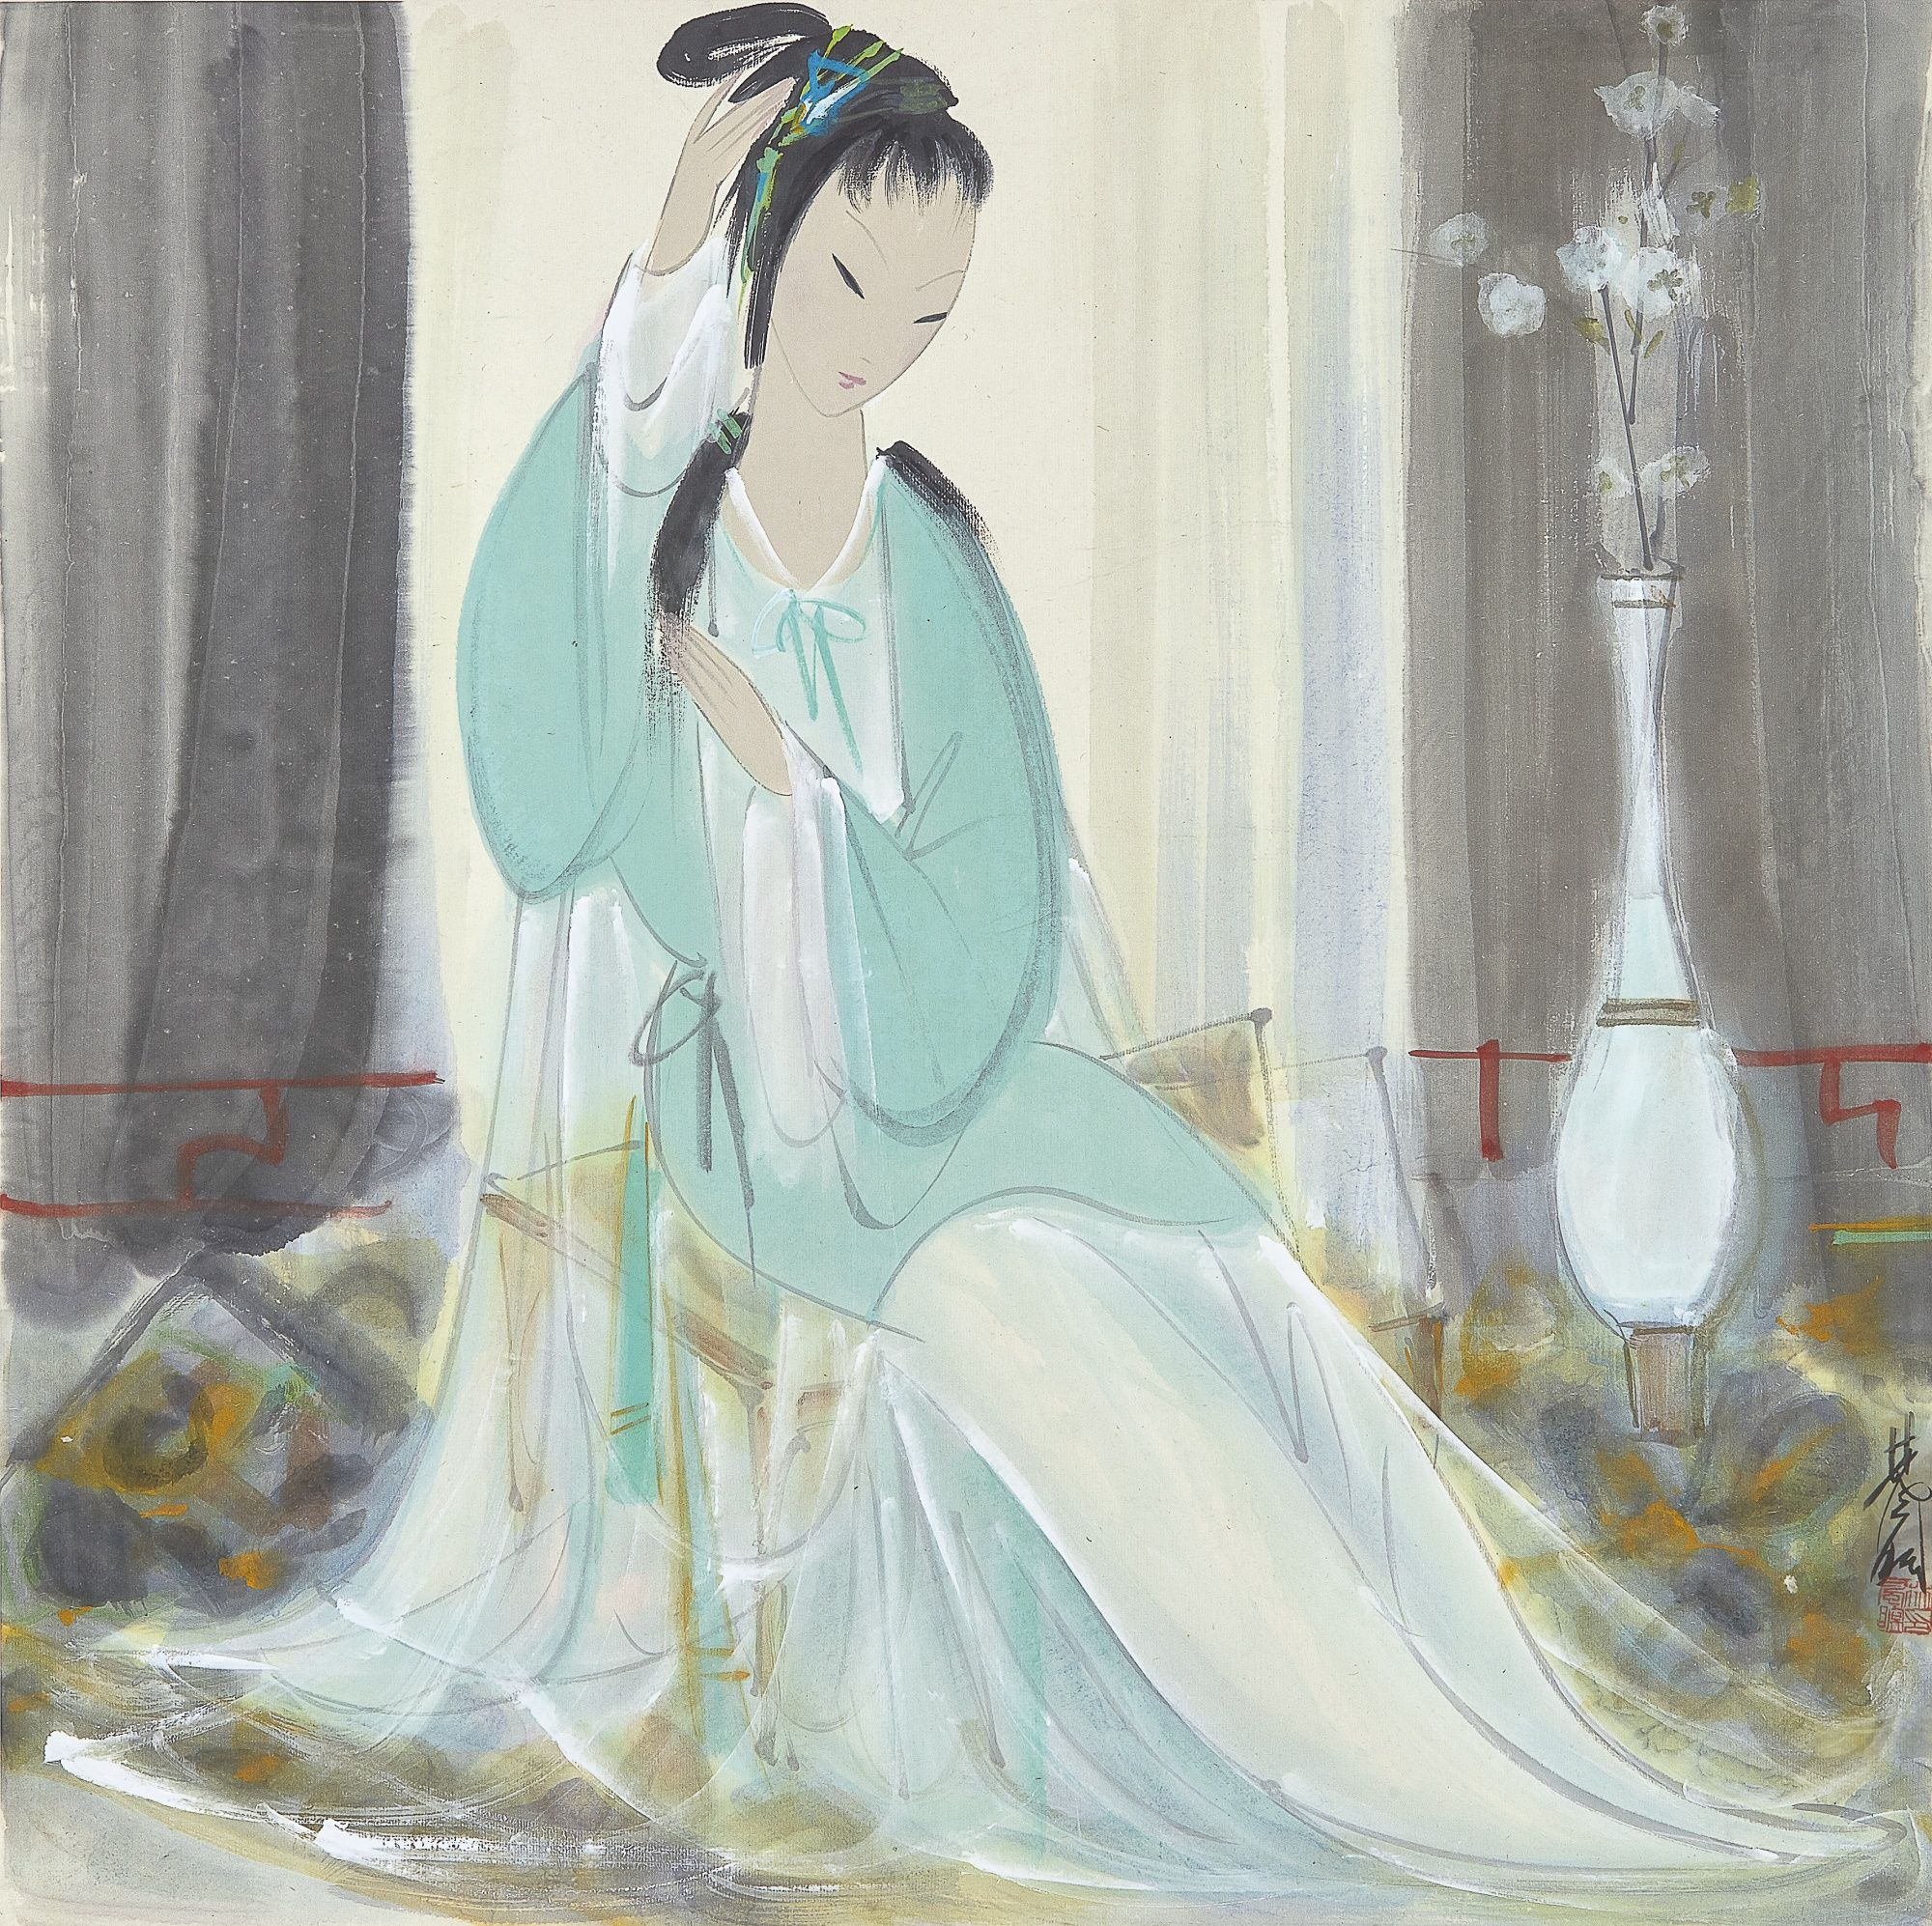 Lin Fengmian (1900-1991) LADY TIDYING HAIR. 林風眠 (1900-1991)  理鬢圖 設色紙本 立軸 款識: 林風眠。  鈐印:「林風瞑印」。 69.2 by 69.2 cm. 27 ¼ by 27 ¼ in.